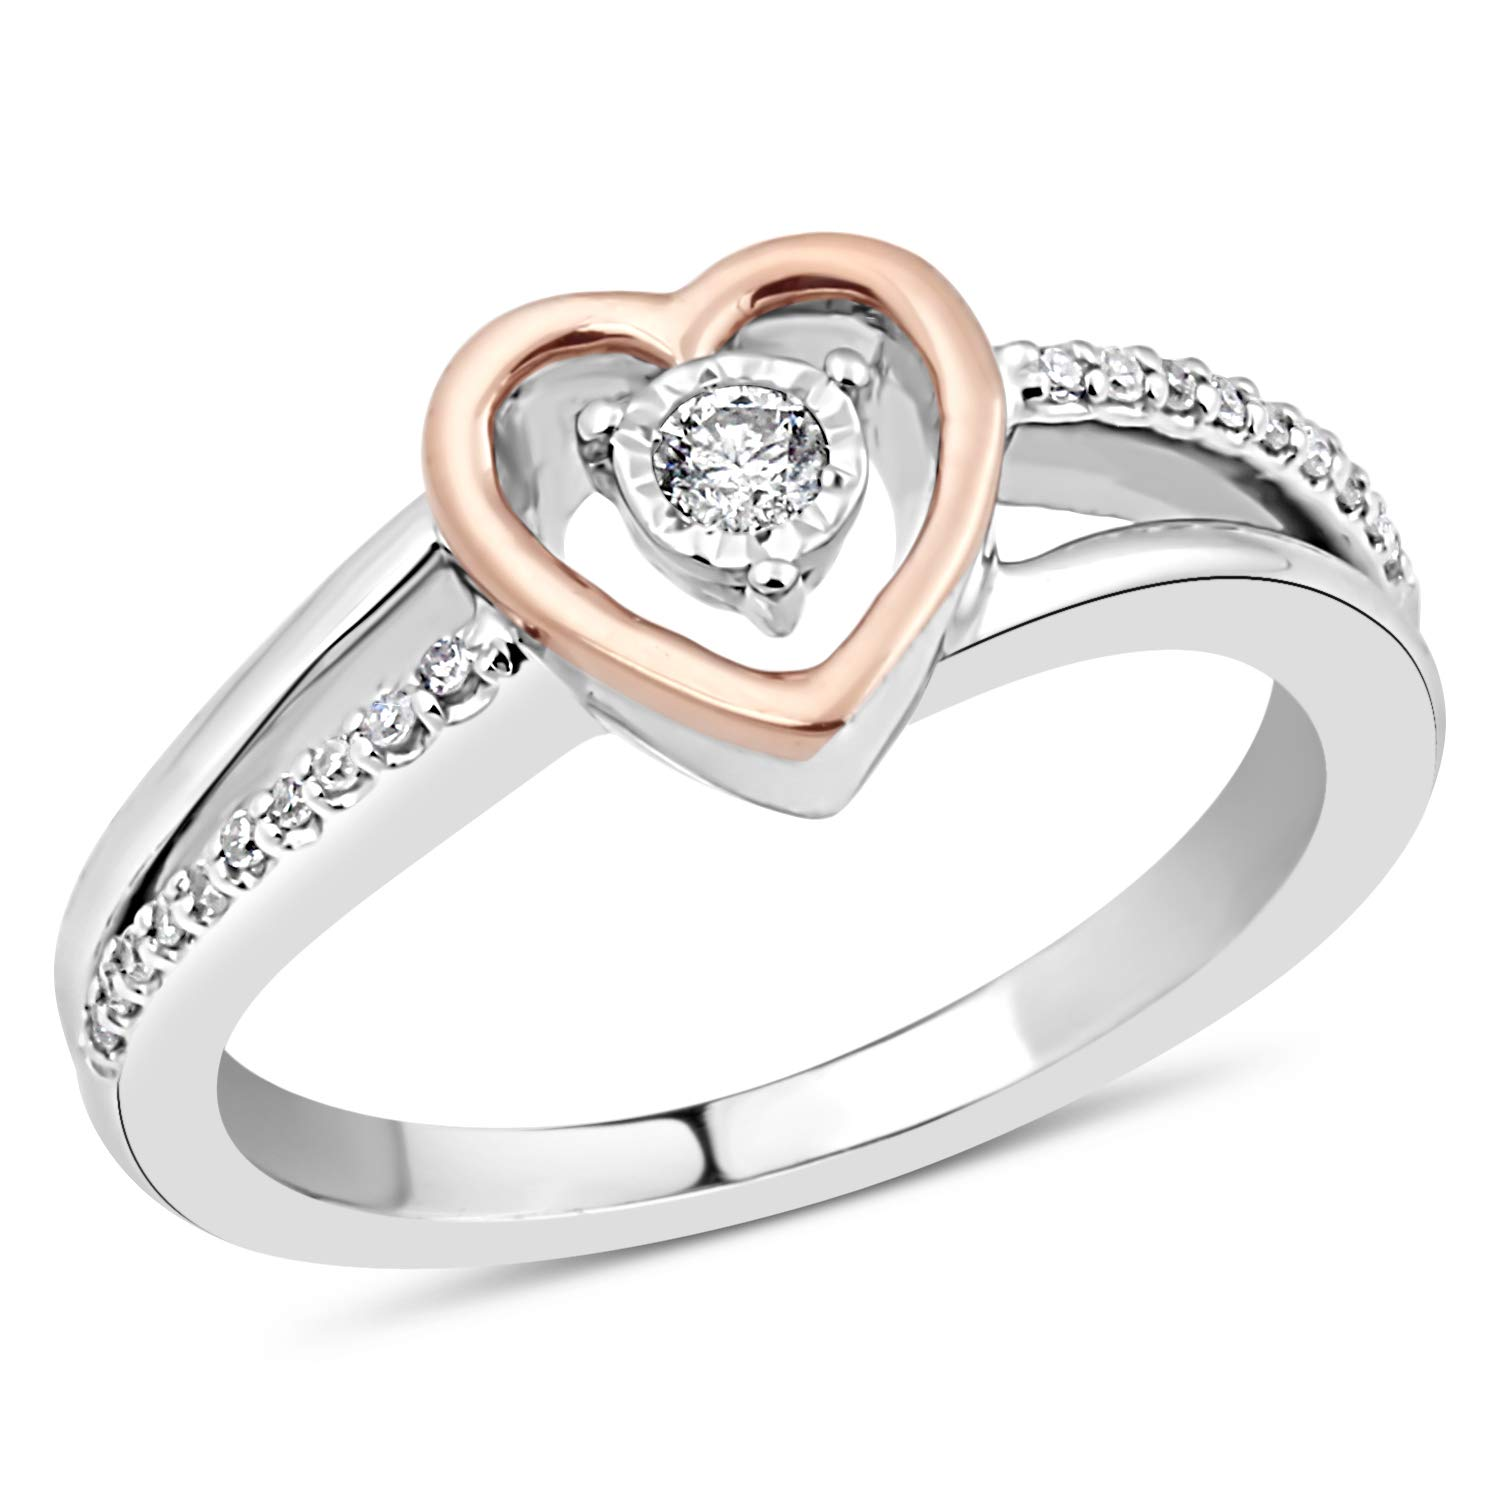 Diamond Promise Ring in Sterling Silver and 10k Rose Gold 1/10 cttw